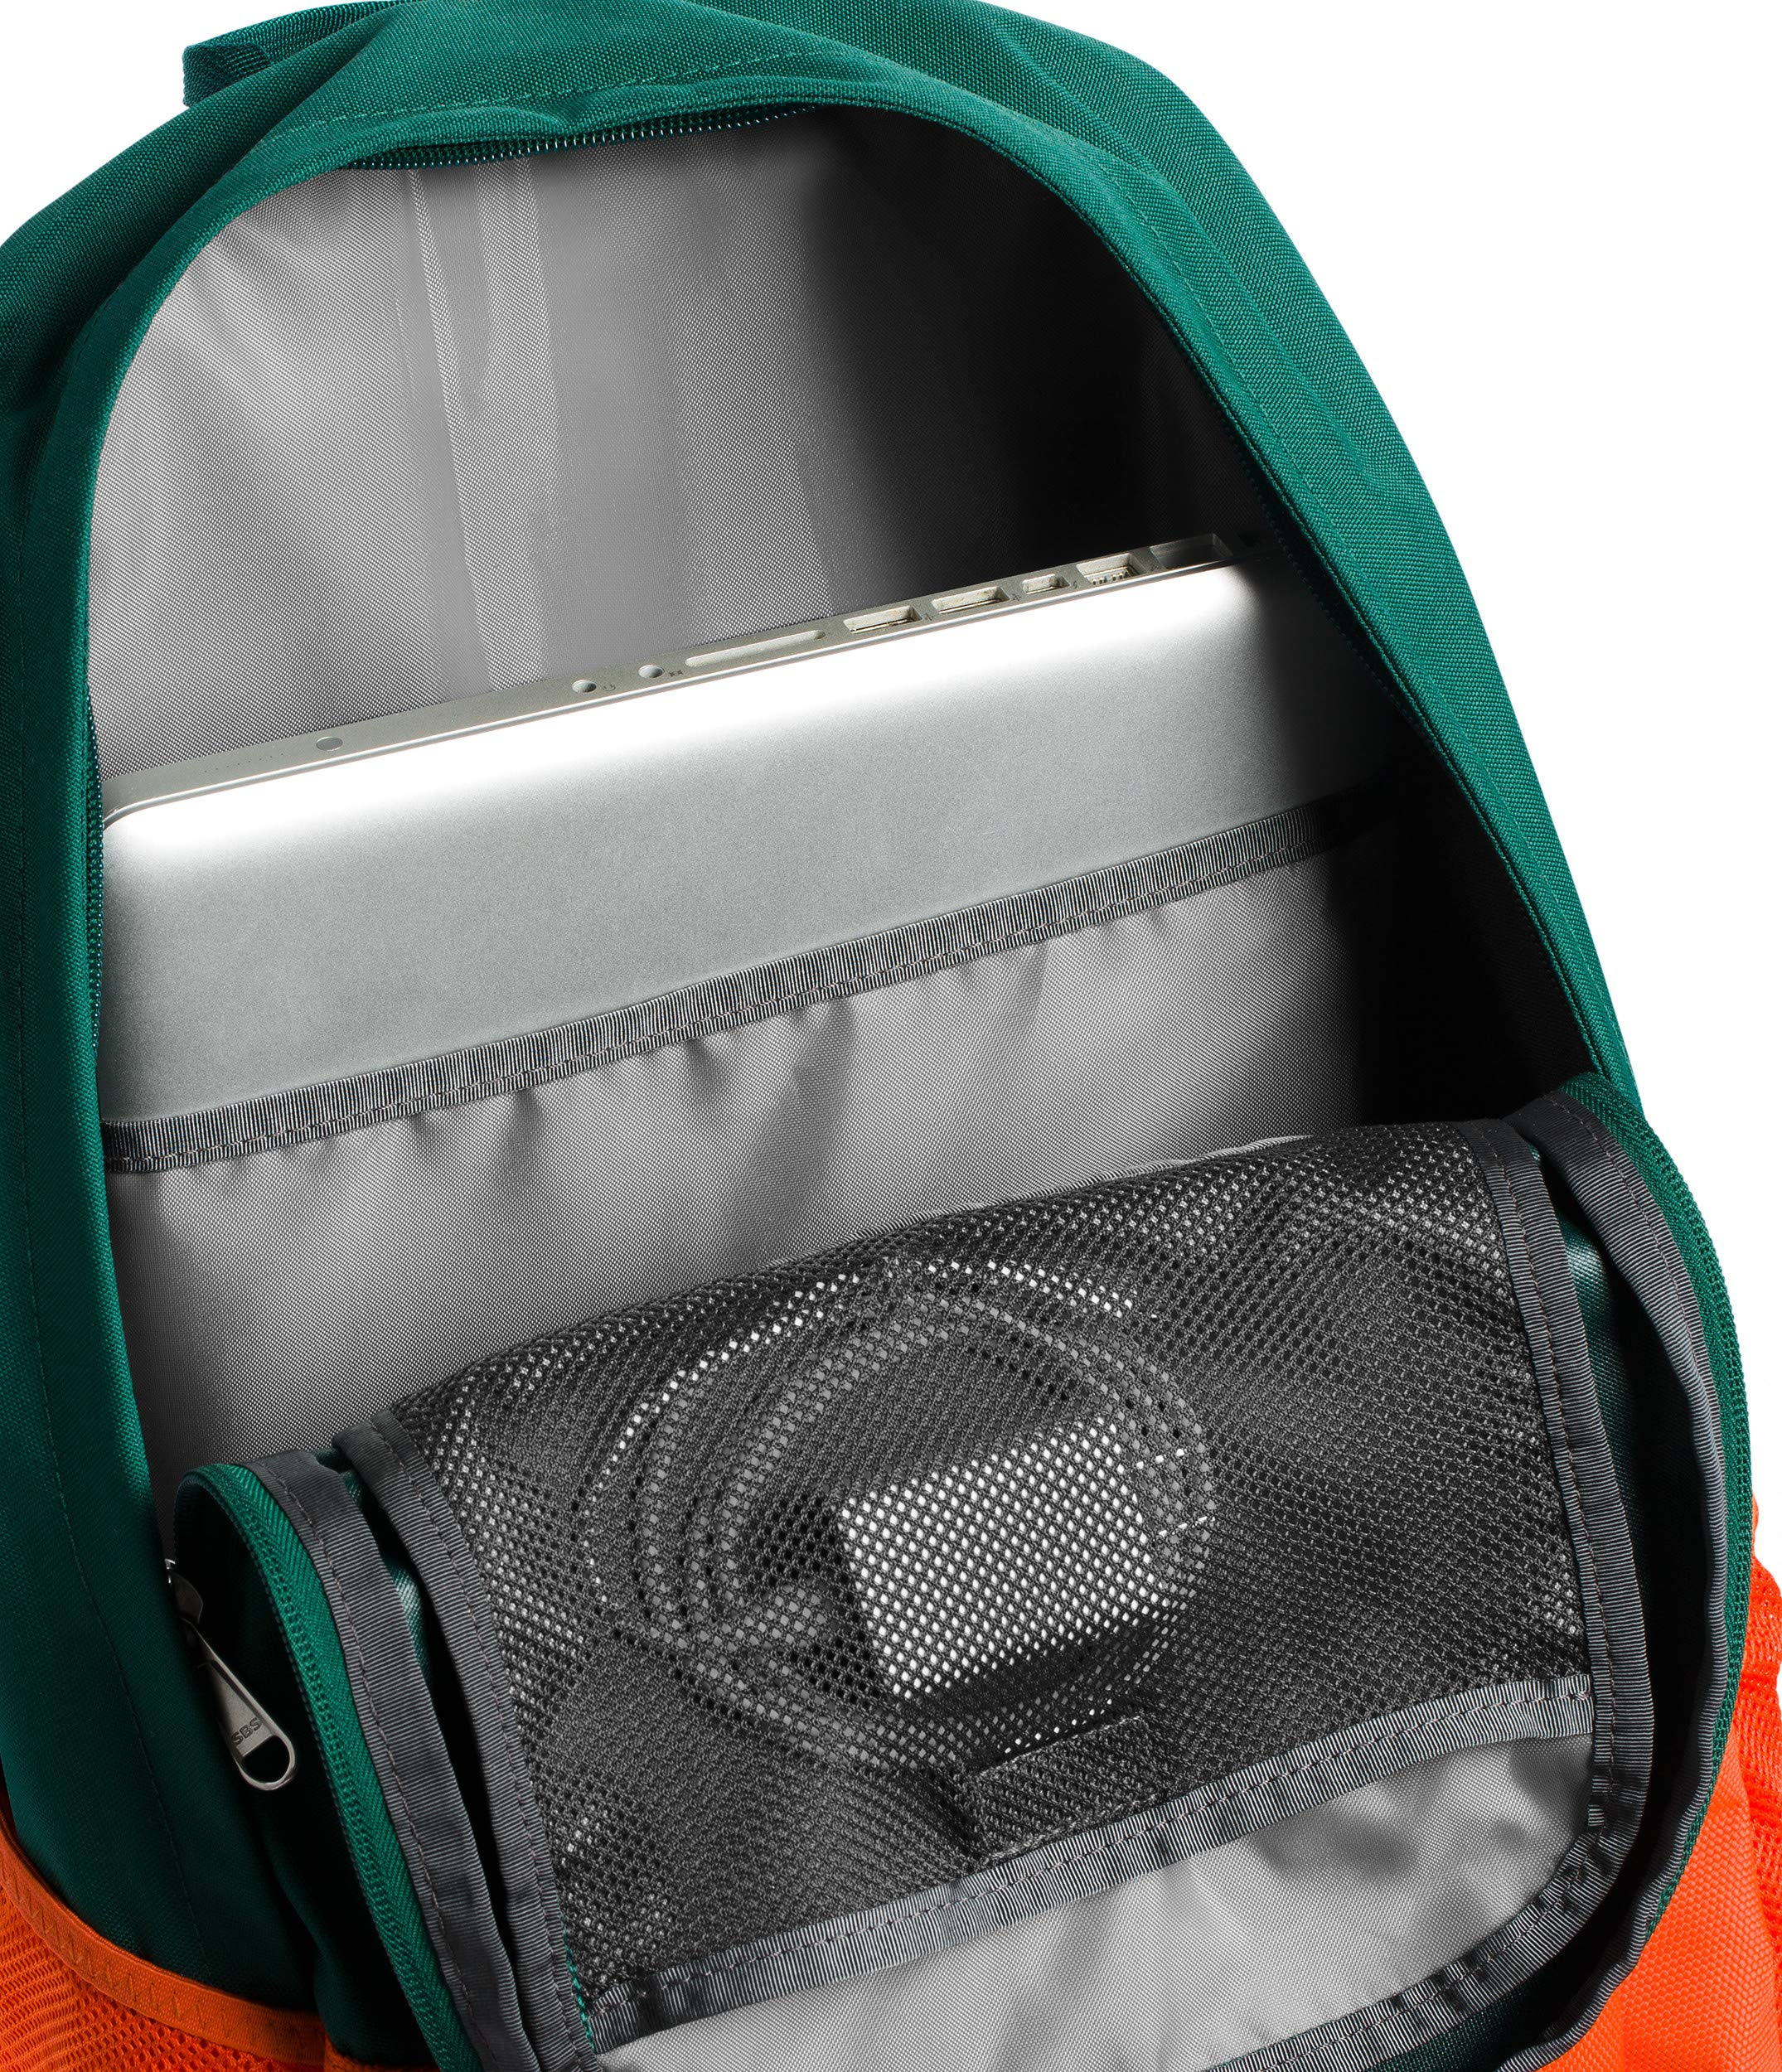 The North Face Wise Guy Backpack - Persian Orange & Botanical Garden Green - OS by The North Face